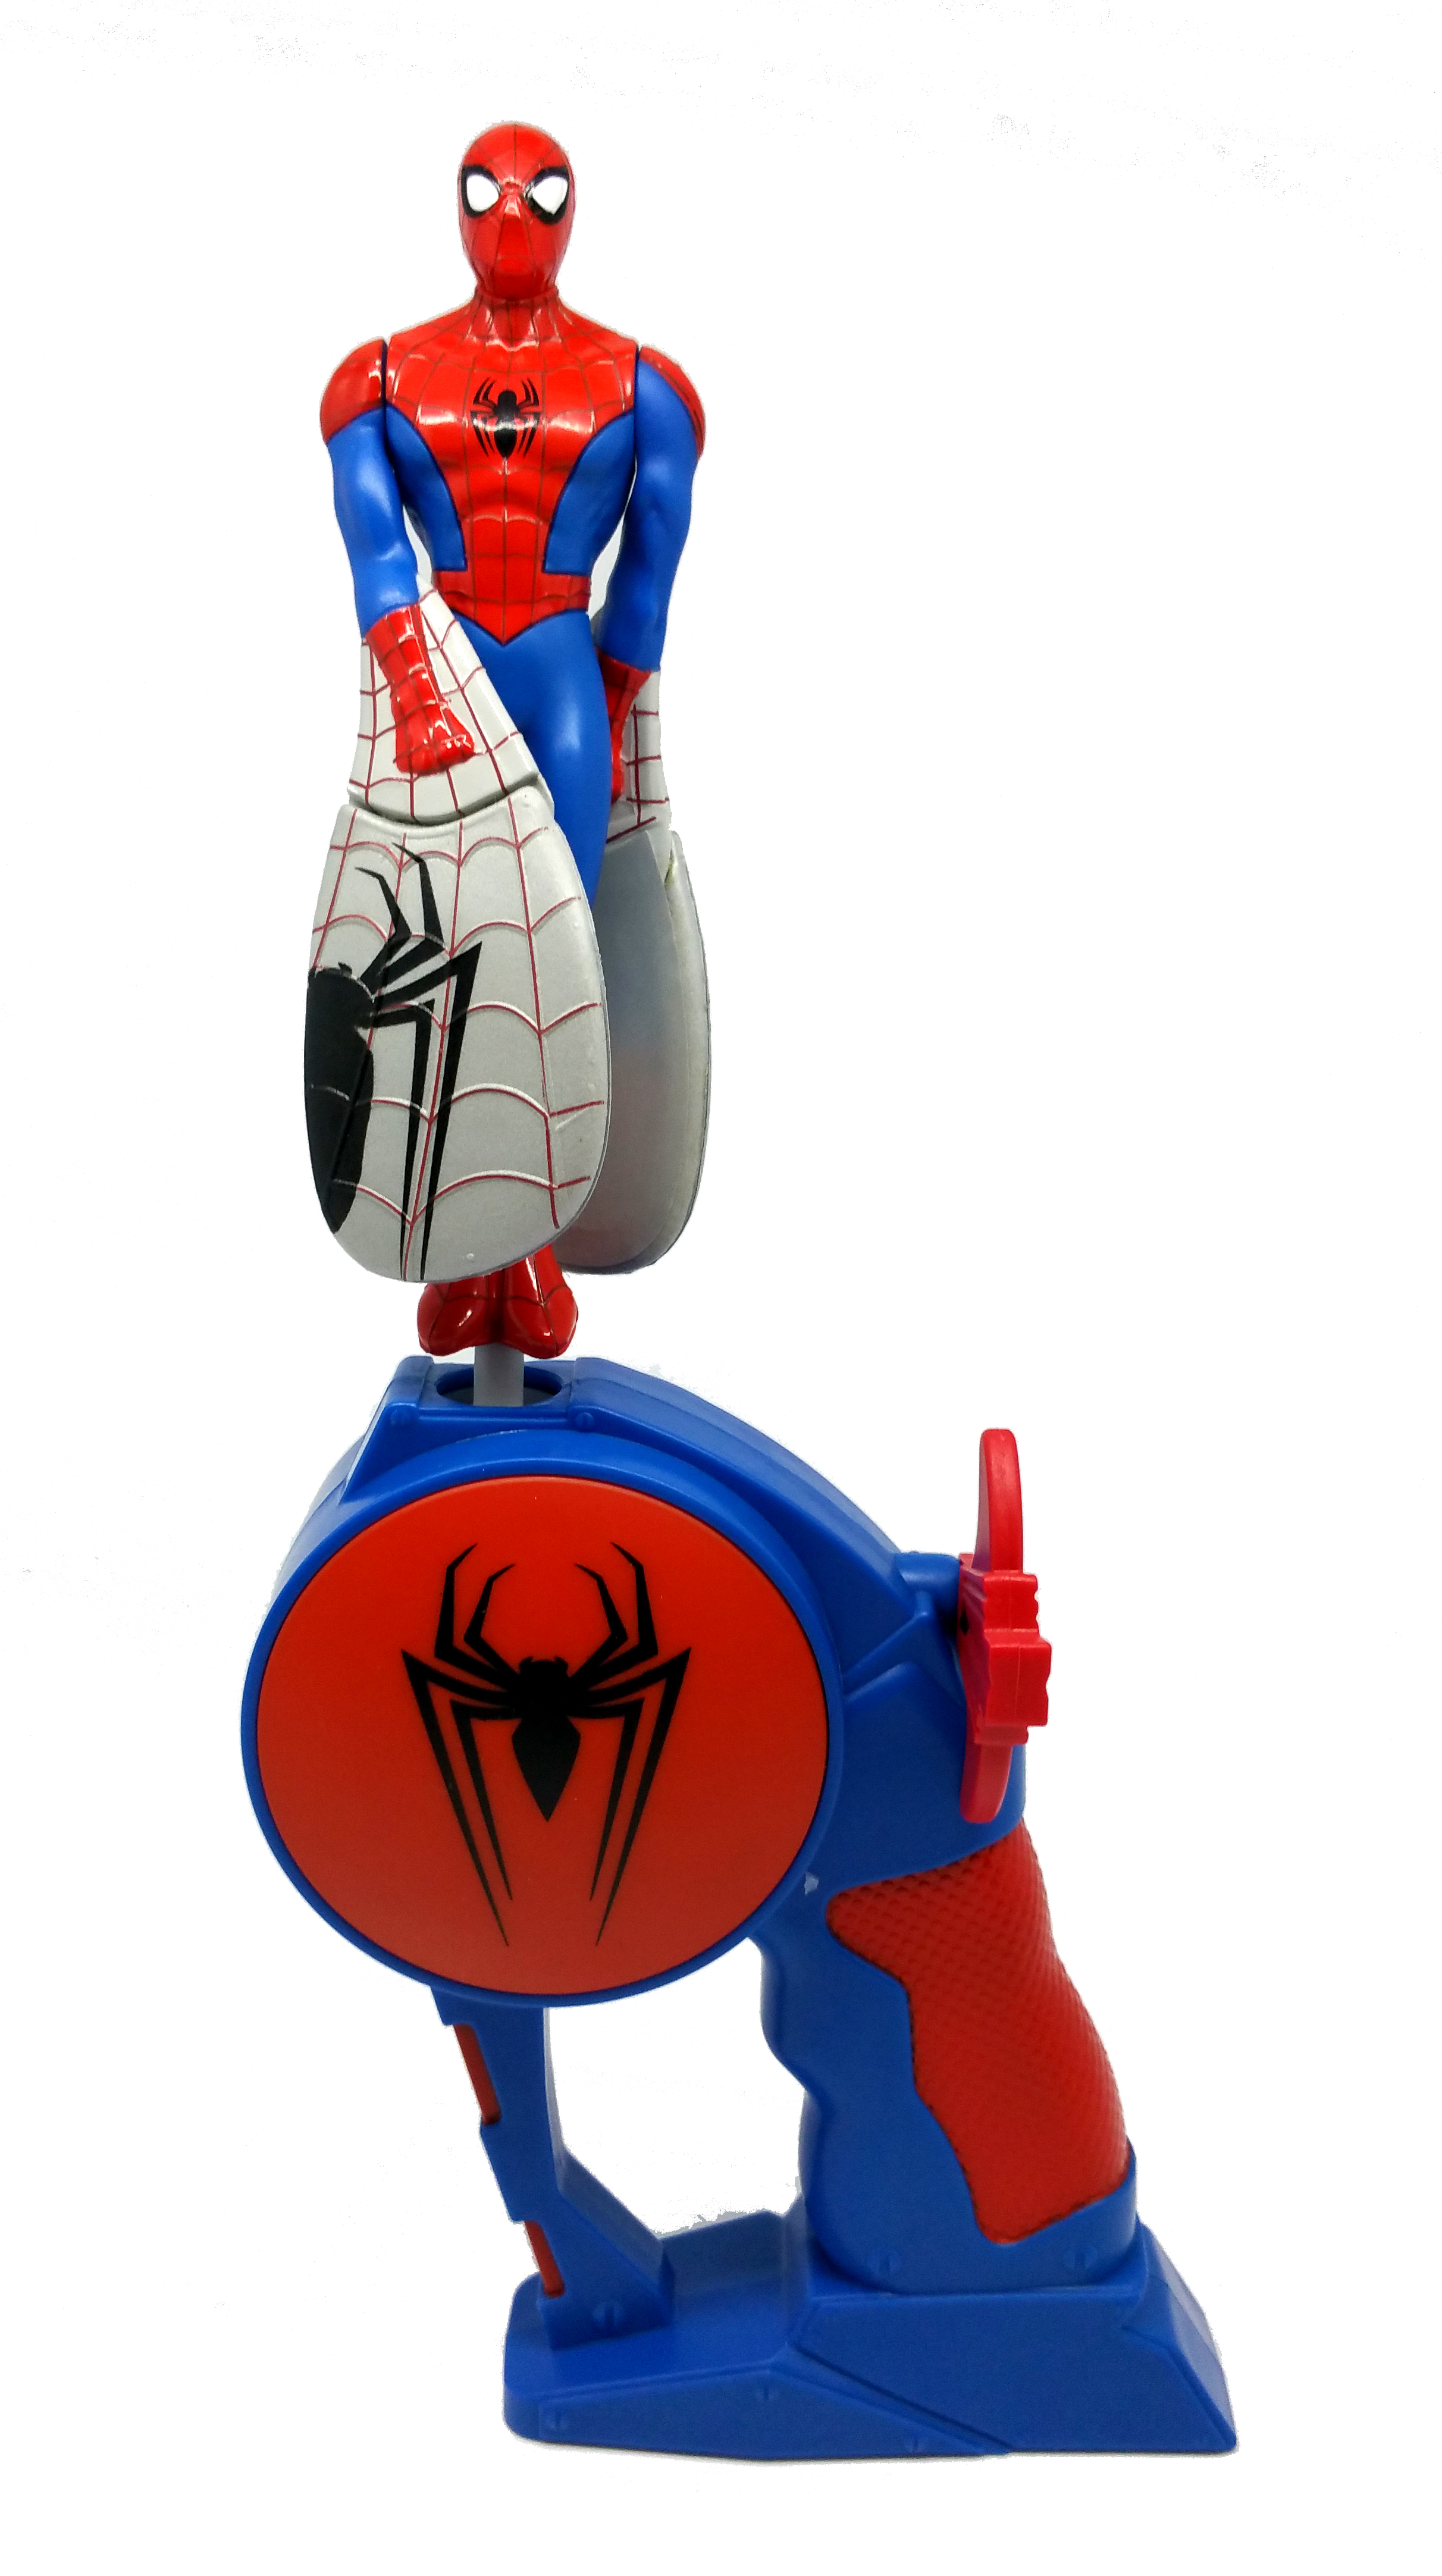 FANTASTICO FLYING HEROES - GIOCO VOLANTE SPIDERMAN - 30 CM